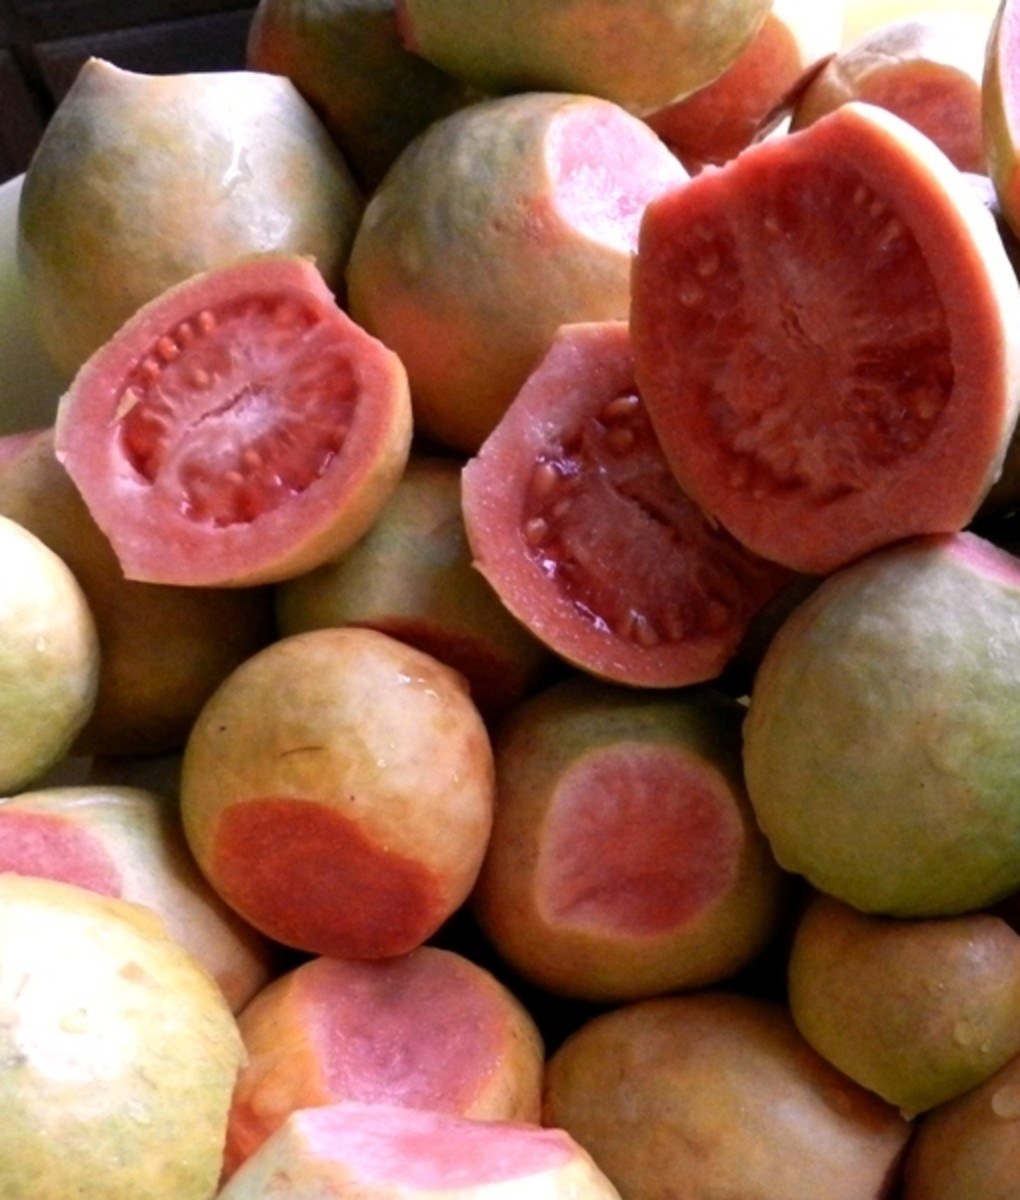 Peel guavas first if you want to cook the shells. For nectar cut shells in half and scoop out pulp.